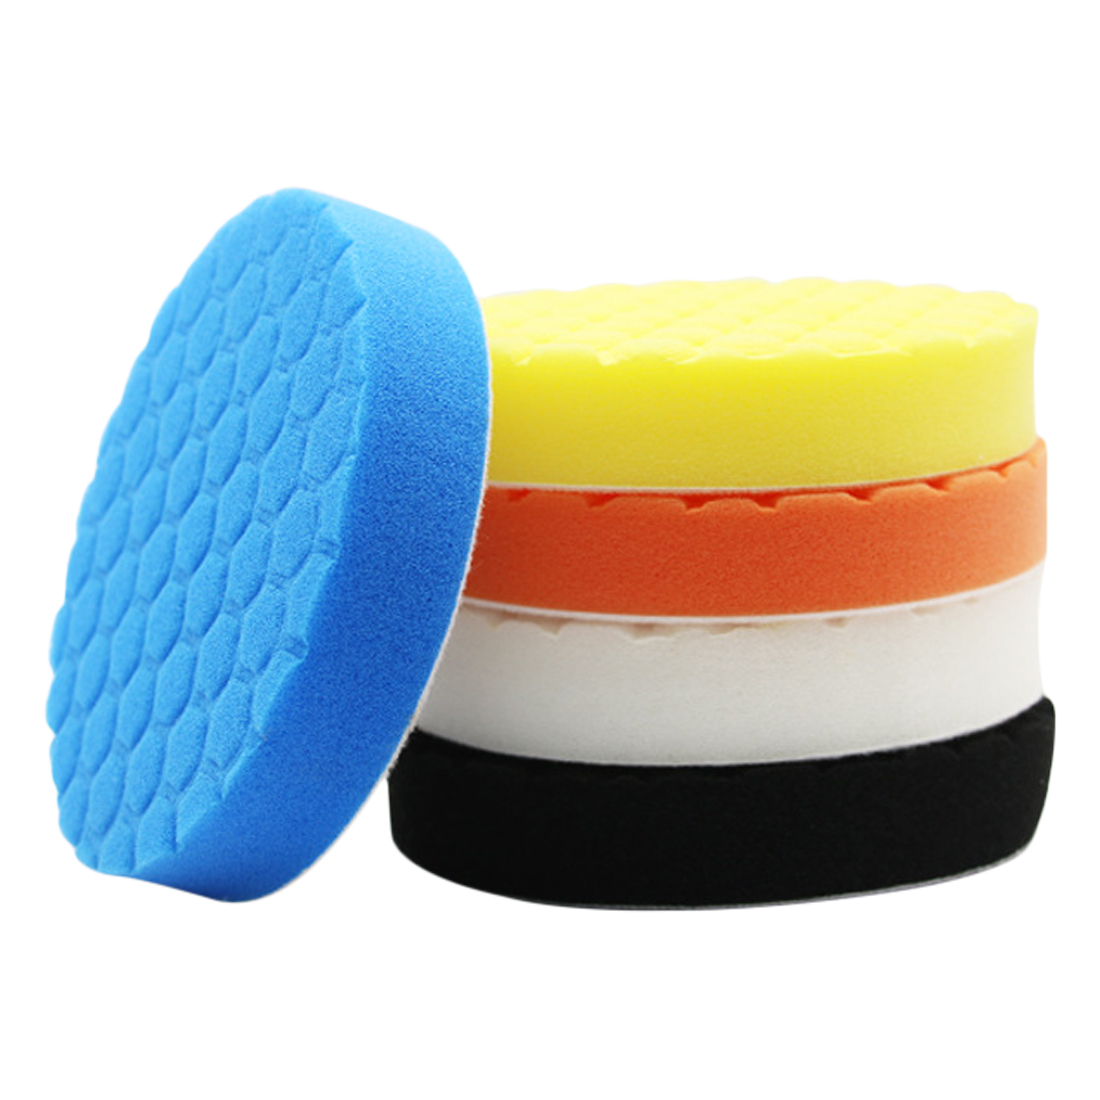 3pcs Hexagonal Polished Sponge Disc Buffing Sponge Polishing Pad Kit Set For Car Polisher Buffer 3/4/5/6/7inch